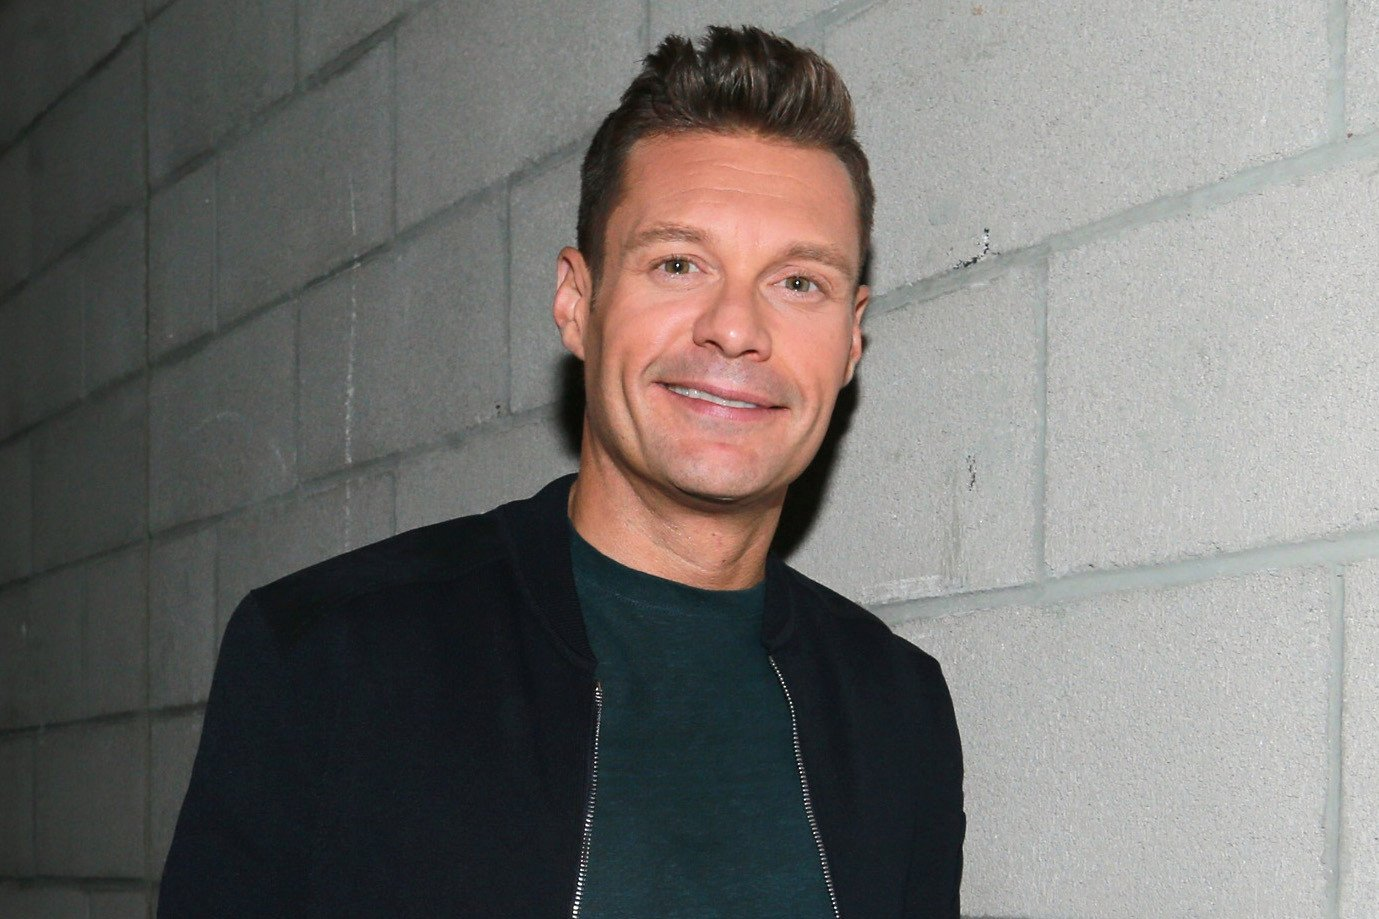 E! sets up 30-sec. delay to protect Ryan Seacrest